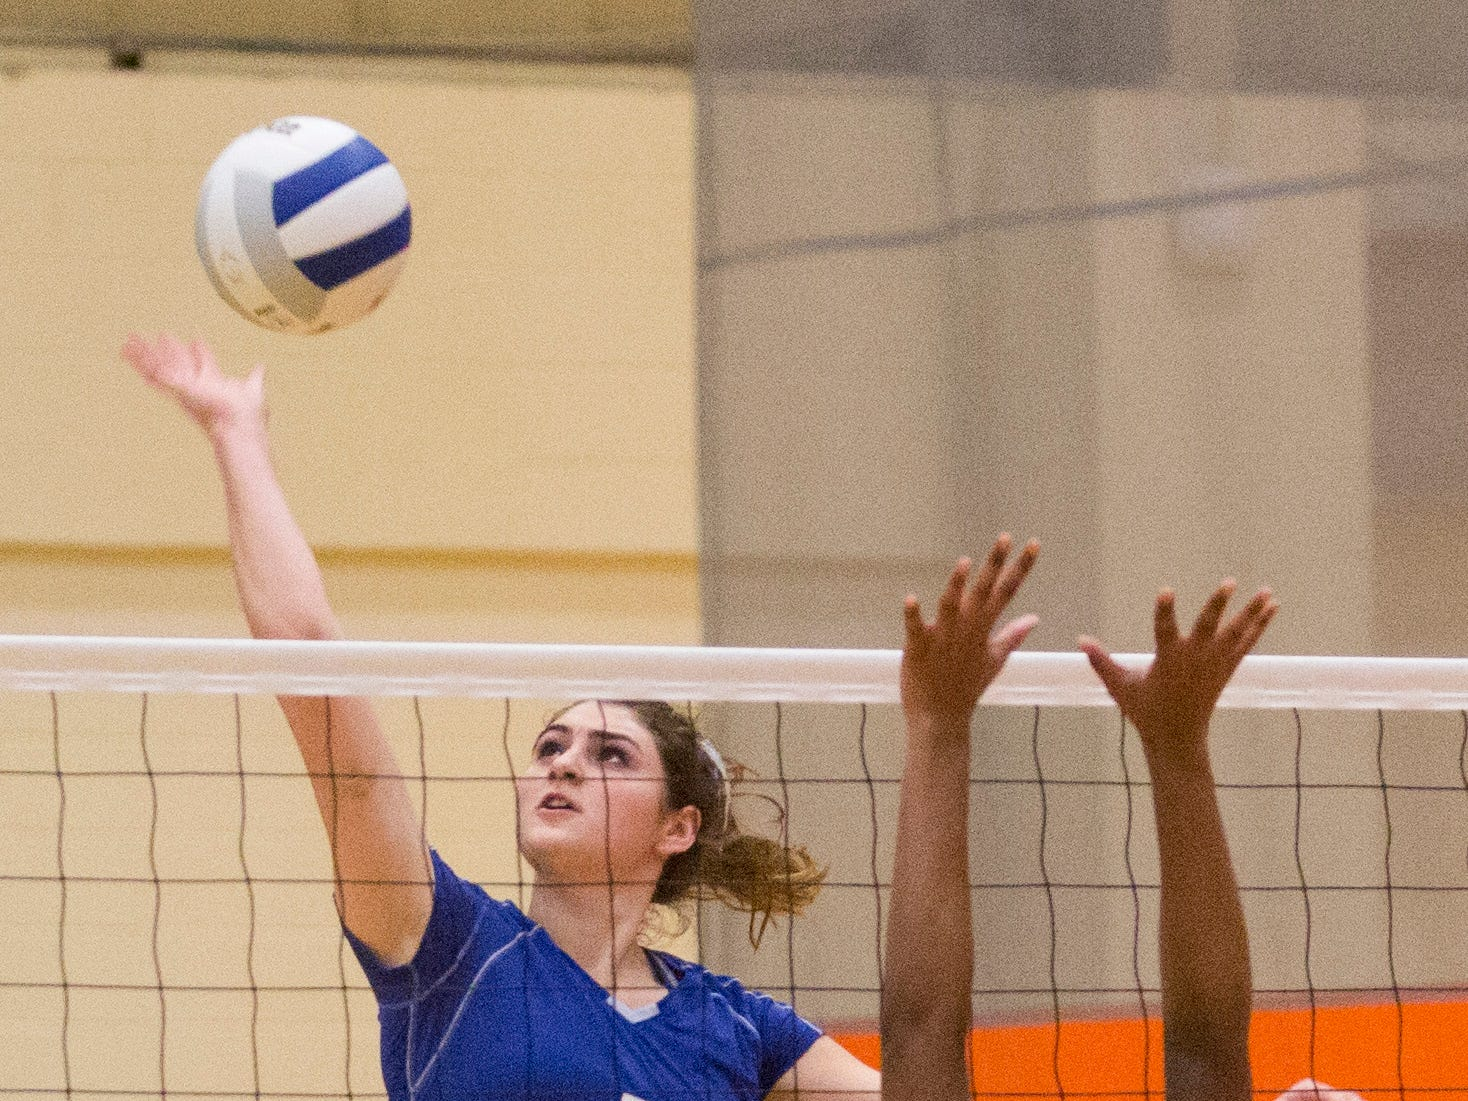 Northern Valley Regional at Demarest's Ohr Yahalomi (5) hits the ball against Rutherford High School's Abby Verderer (20) during the NJSIAA volleyball group two finals at William Paterson Recreation Center. Demarest won 25-13, 25-9.